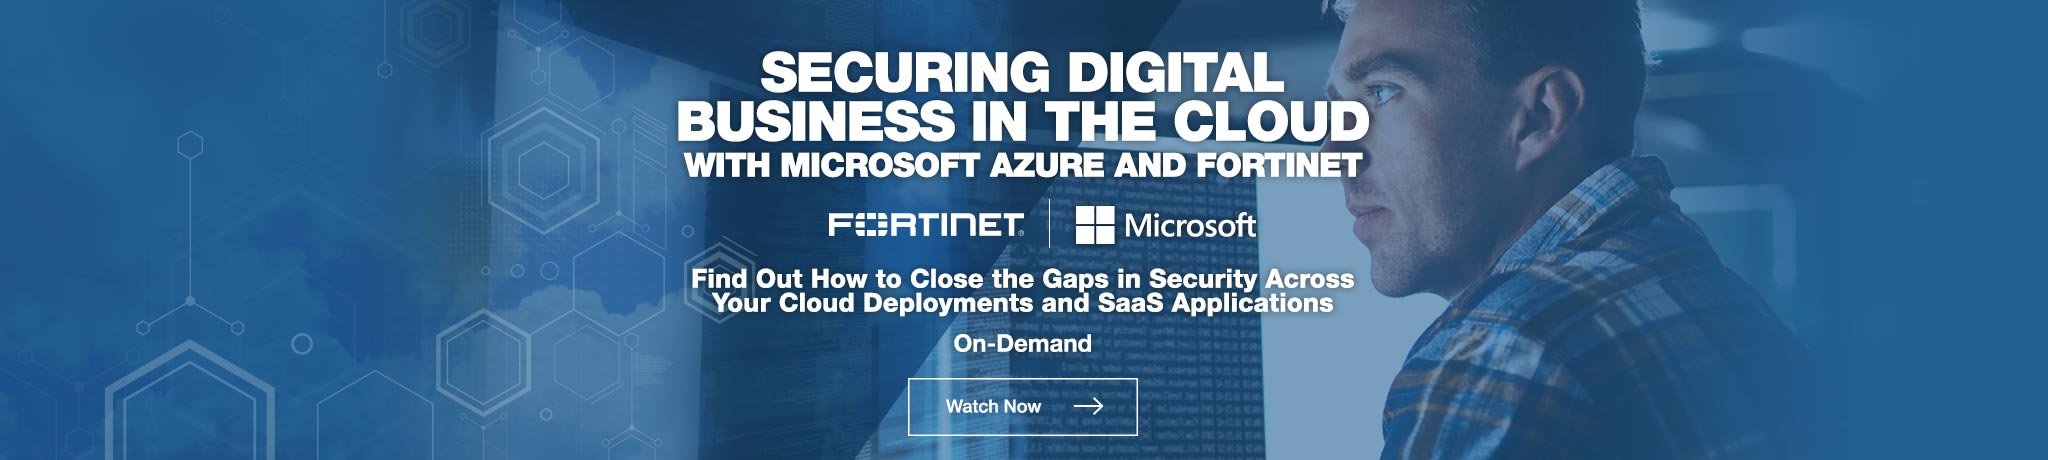 Securing Digital Business in Cloud